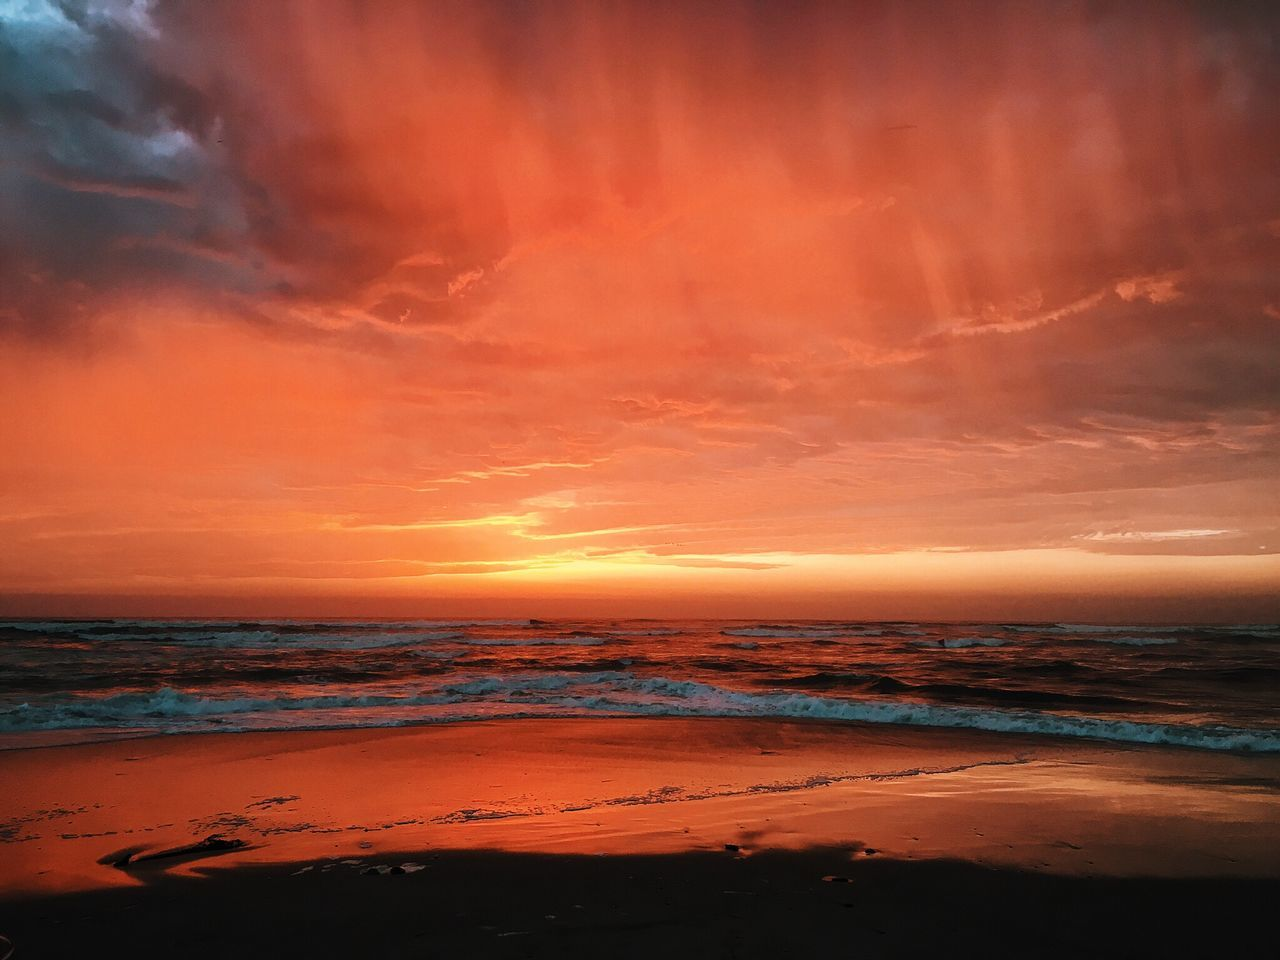 Sunset in Afrika. Atmosphere Atmospheric Mood Awe Beach Beauty In Nature Calm Cloud - Sky Dramatic Sky Horizon Over Water Idyllic Majestic Nature Orange Color Scenics Sea Seascape Shore Sky Sunset Tourism Tranquil Scene Tranquility Travel Destinations Vacations Water